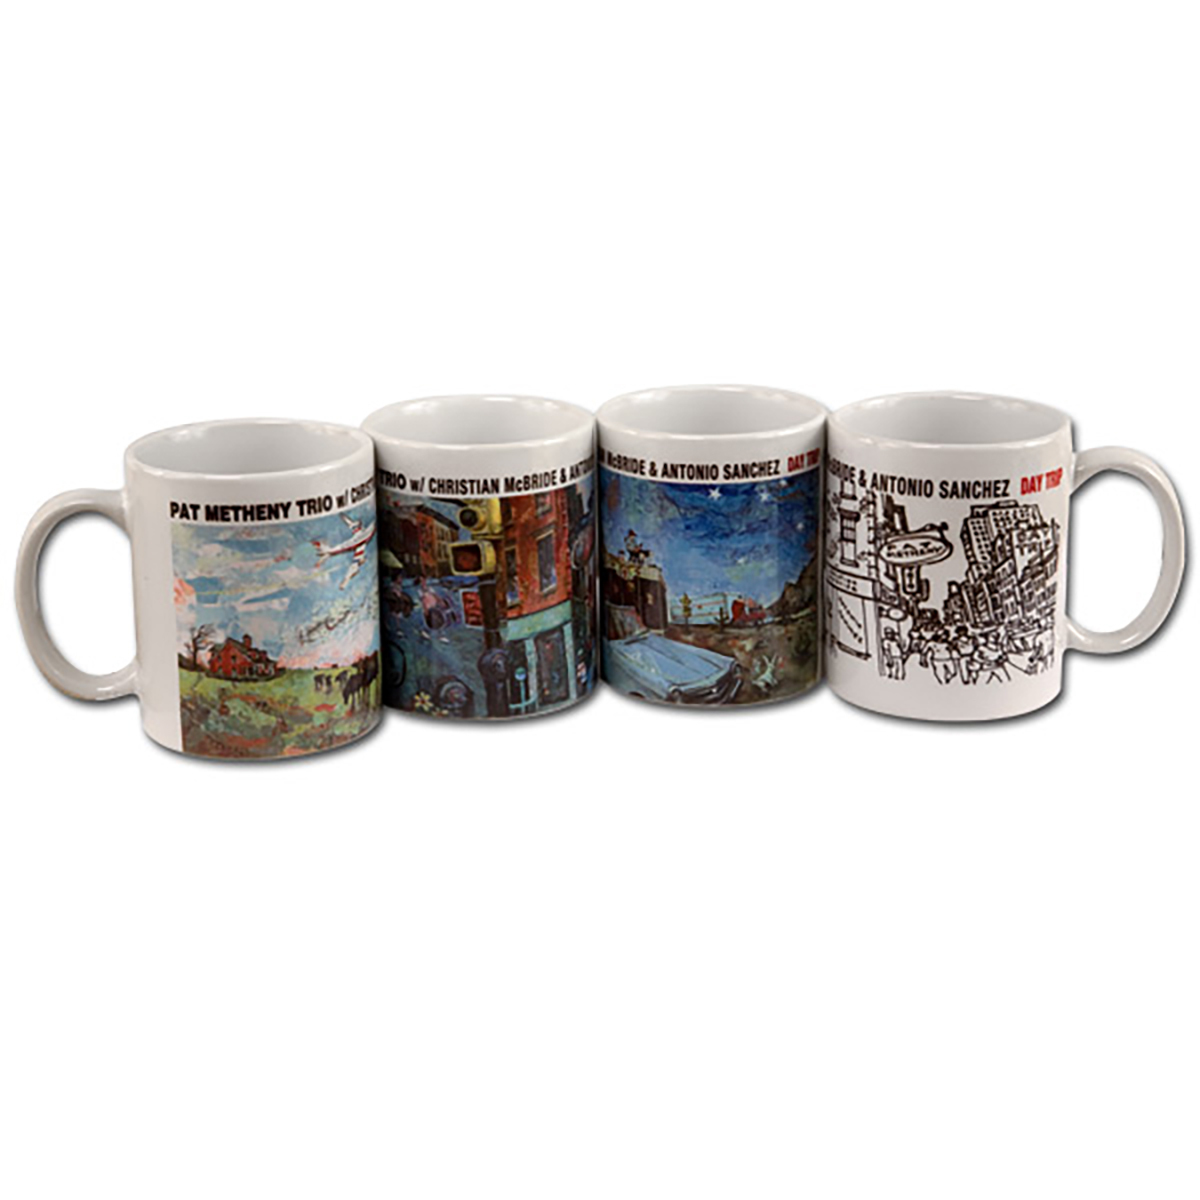 Pat Metheny - Day Trip Mug 4 Pack